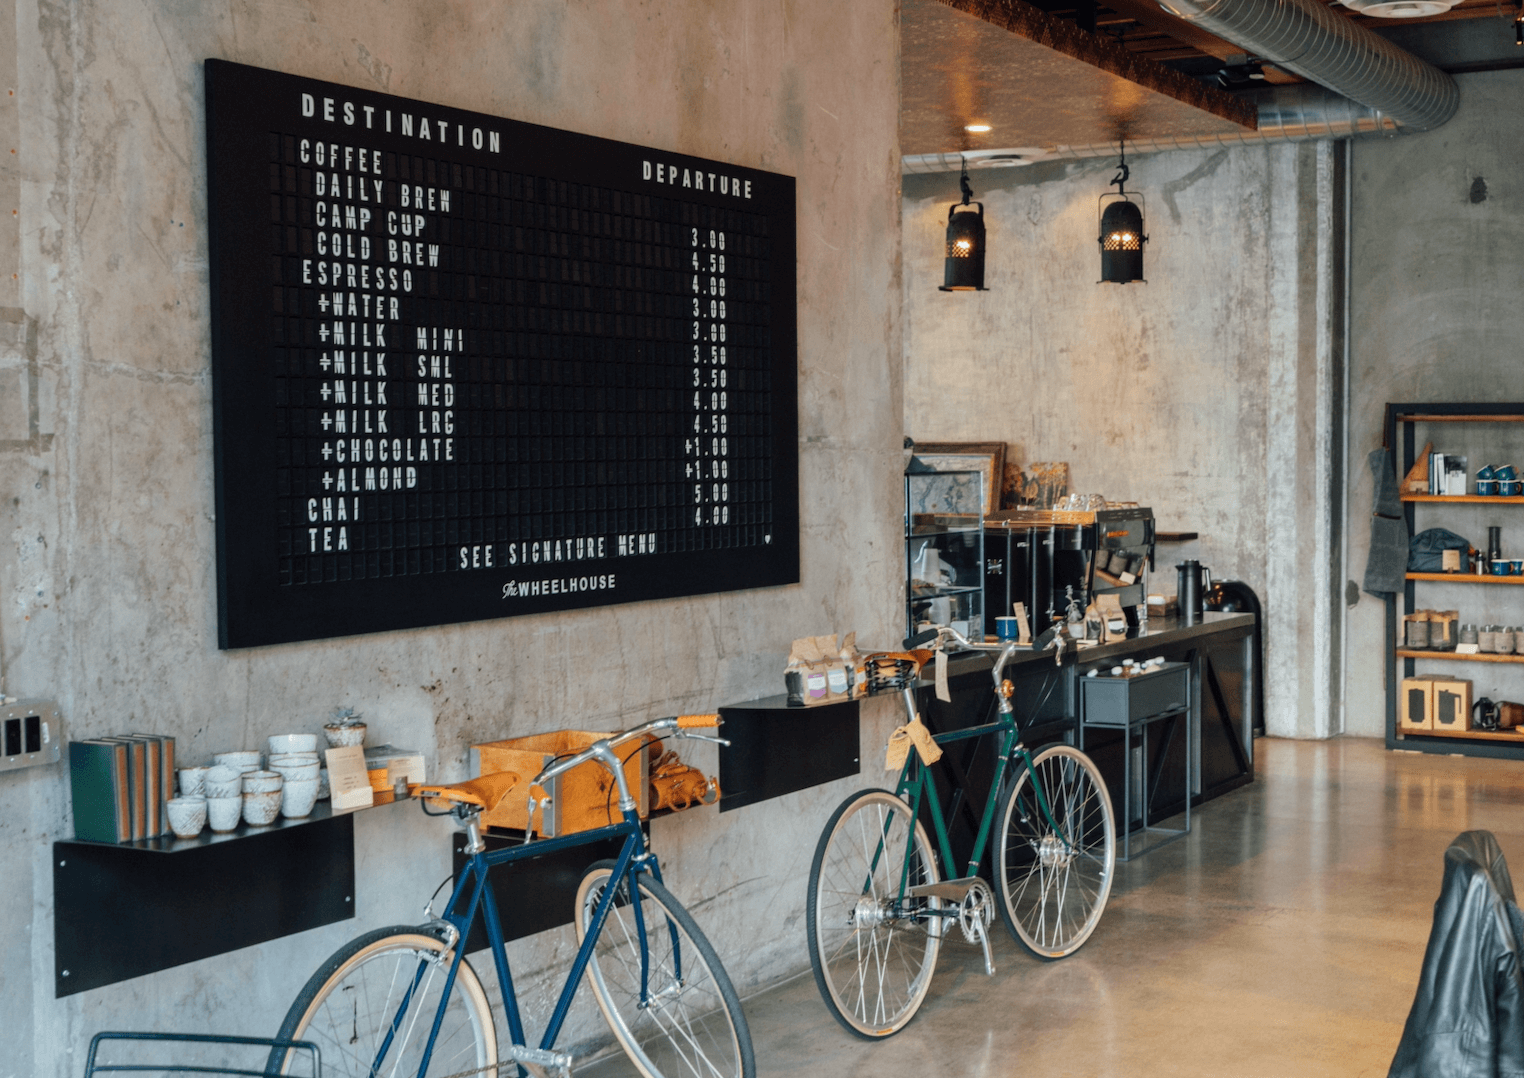 Top Coworking Amenities in Your Shared Workspace